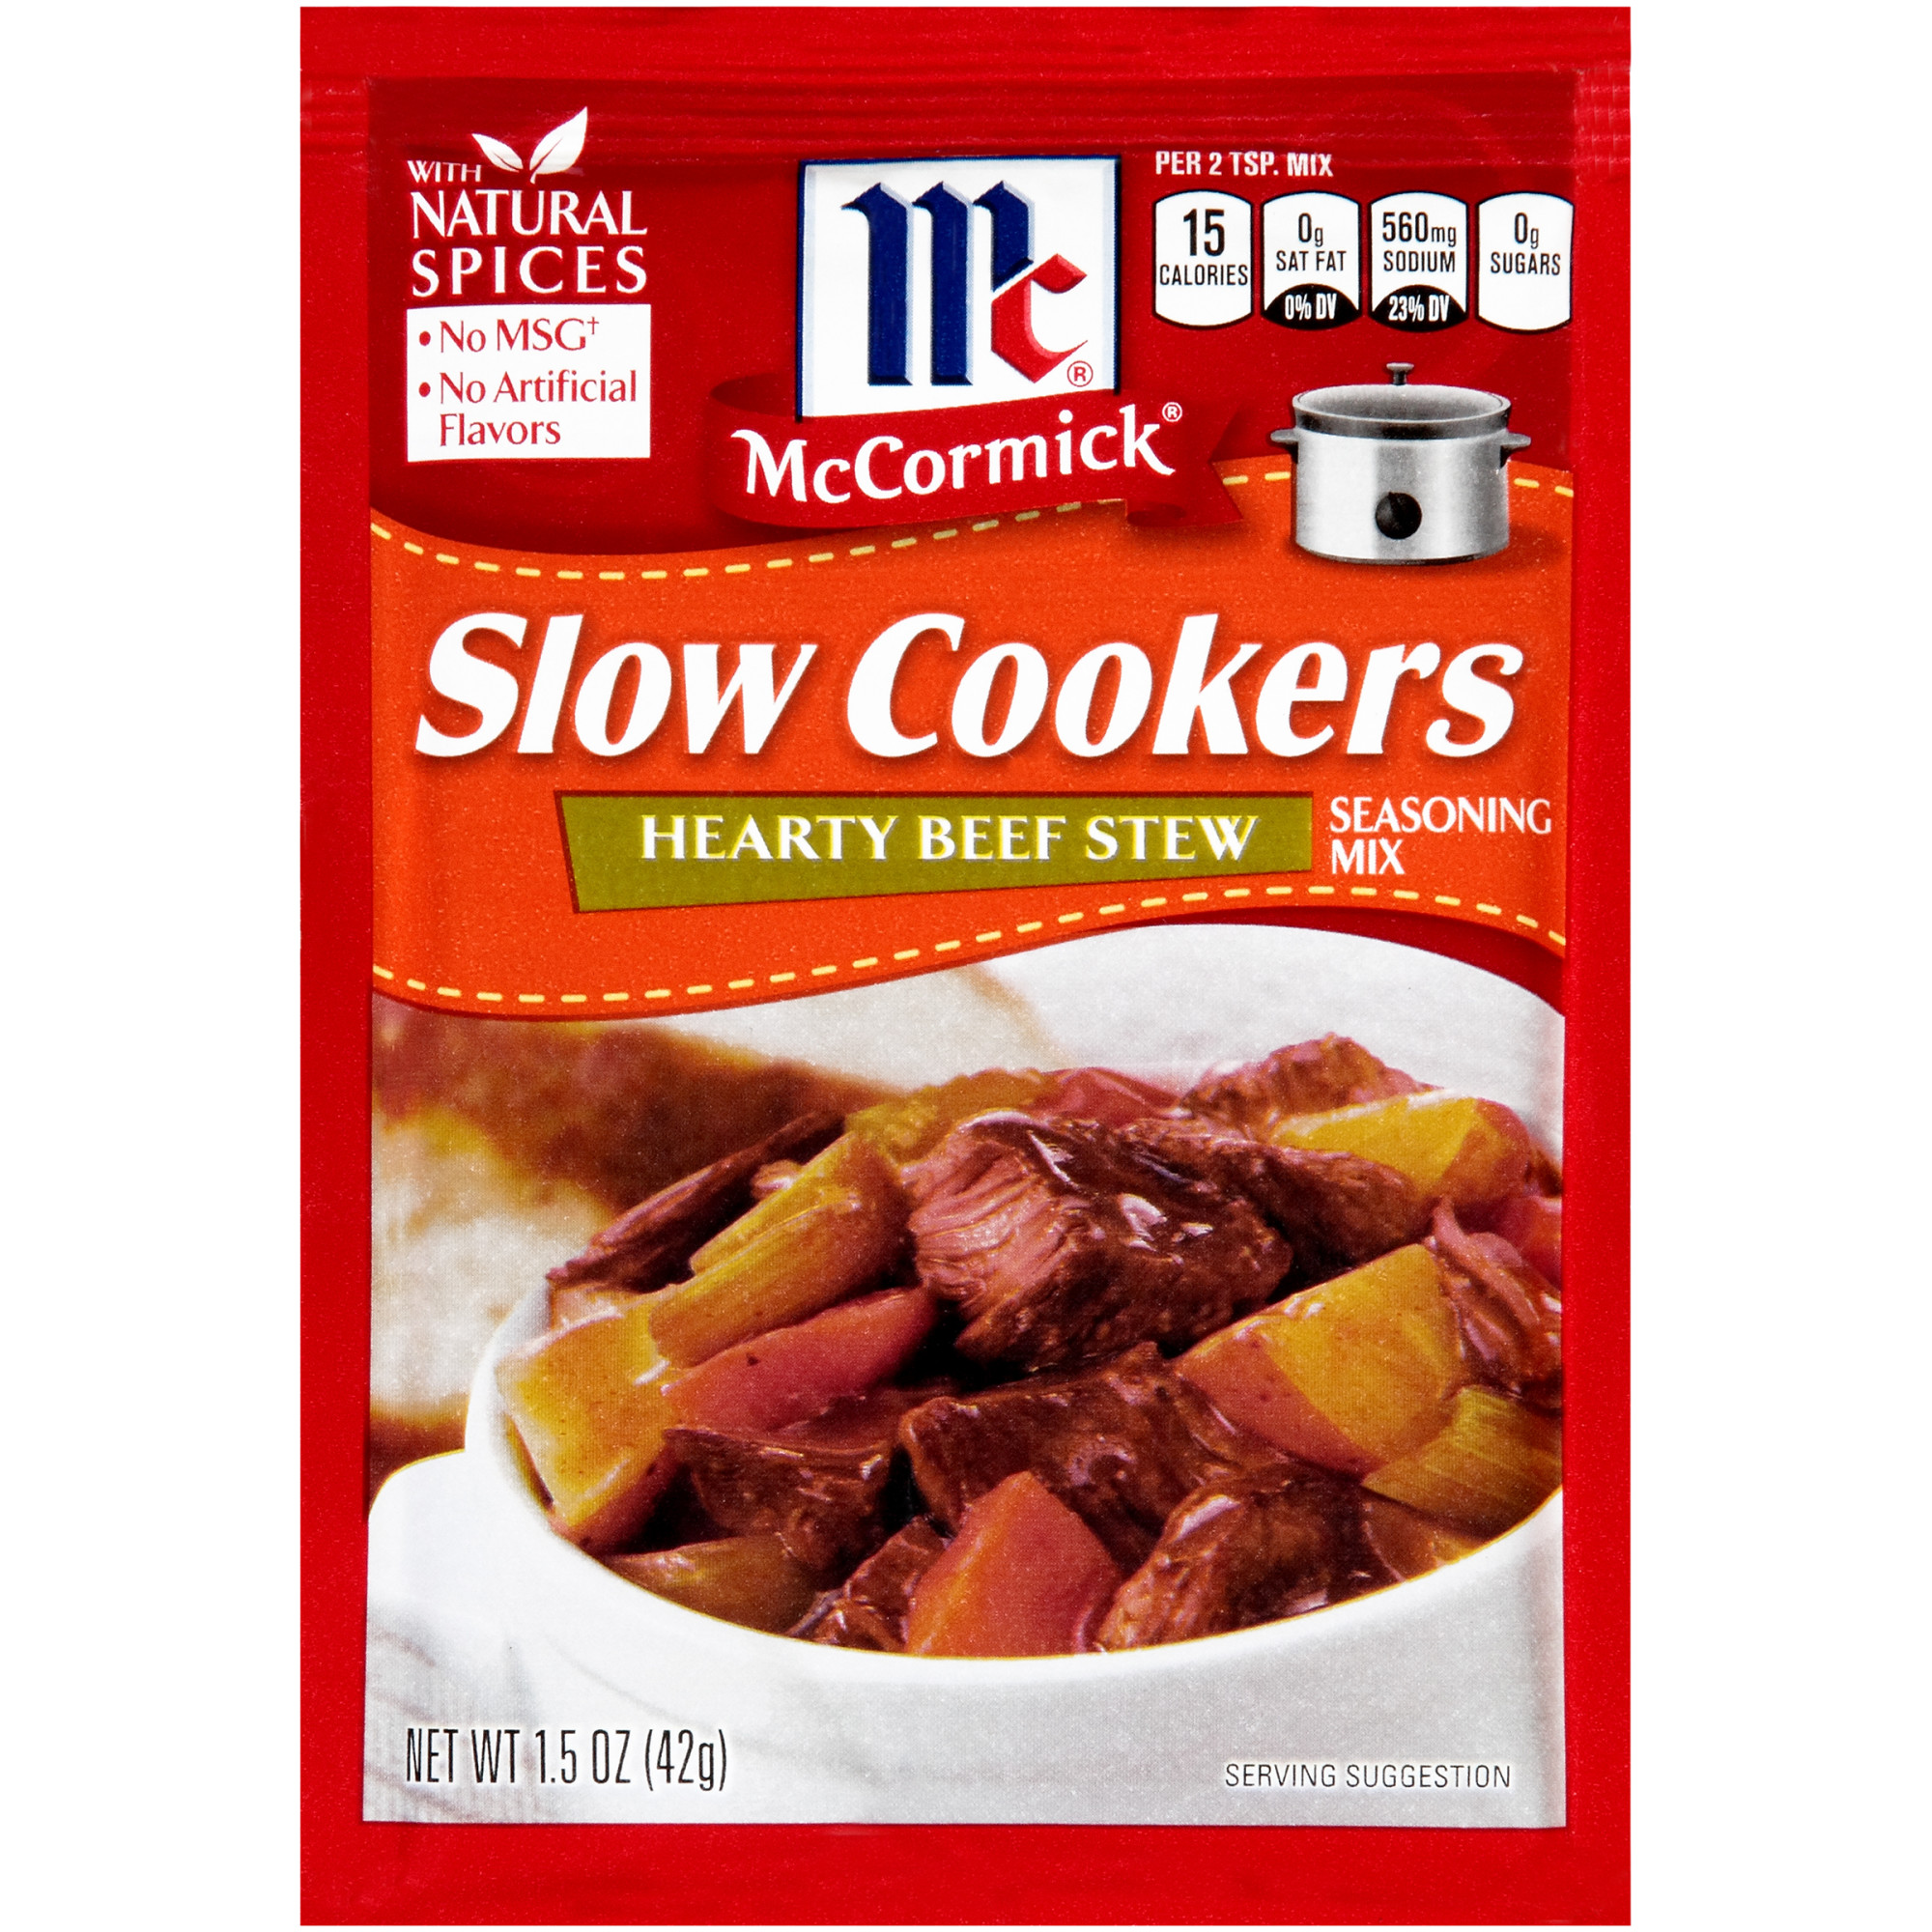 (4 Pack) McCormick Slow Cookers Hearty Beef Stew Seasoning Mix, 1.5 oz